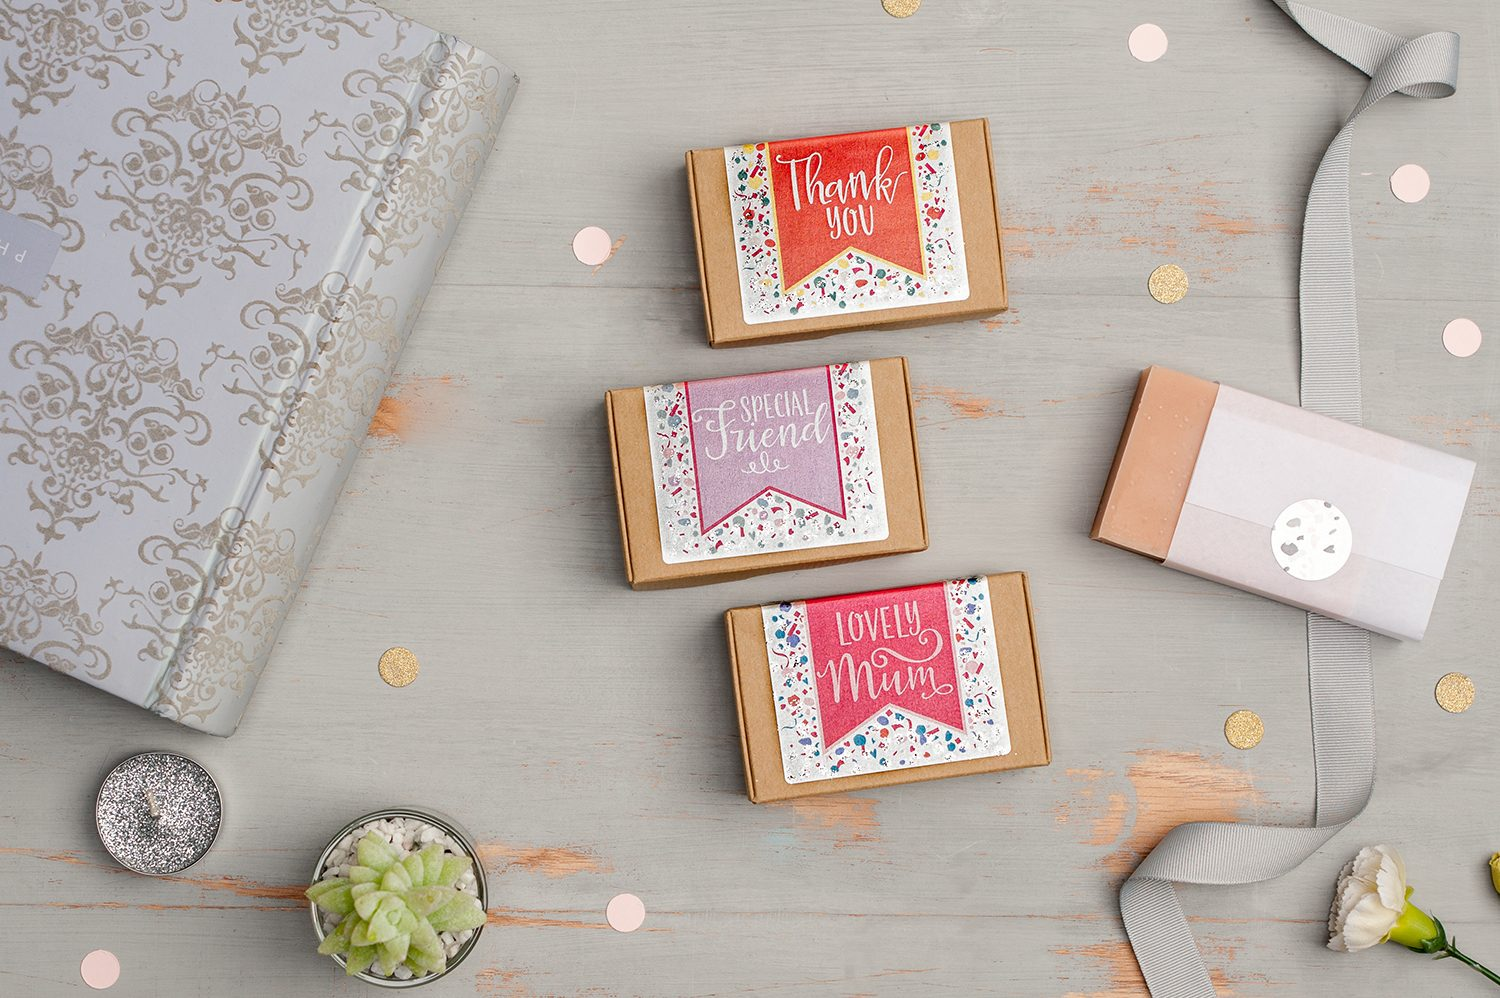 Group overhead photograph of packaged soaps by the Handcrafted Card Co.